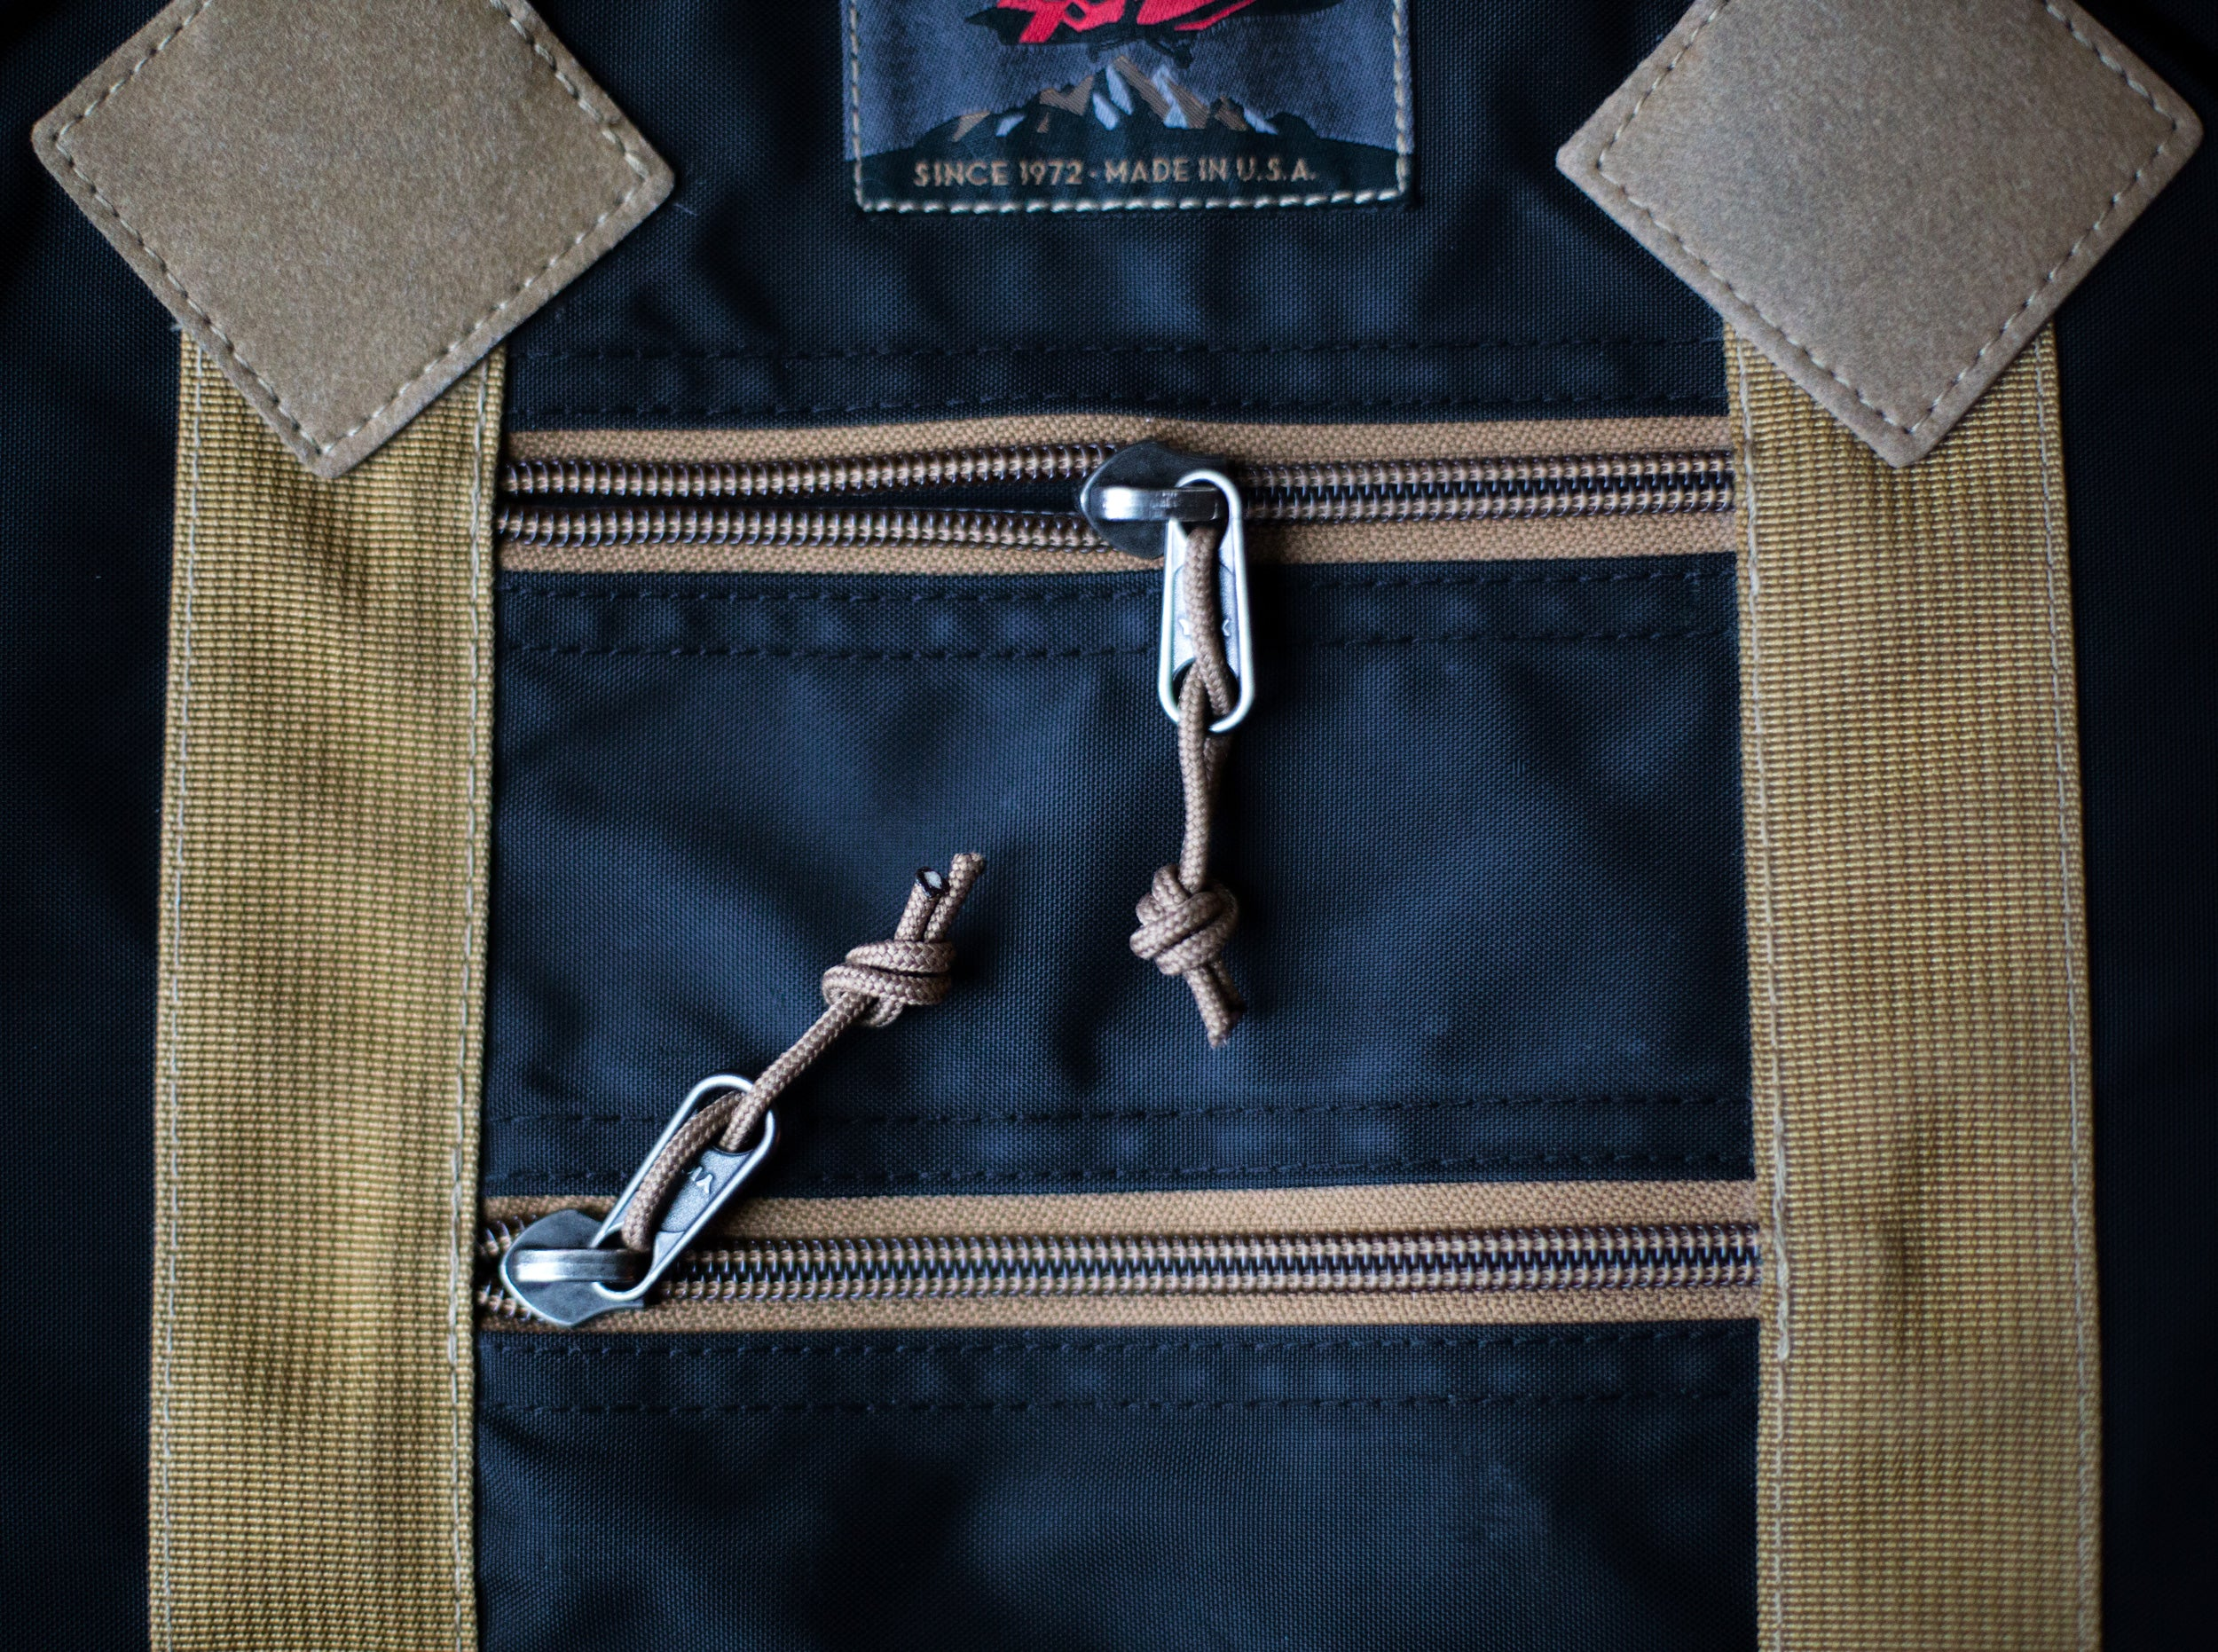 Cord Zipper Pulls and The Robust Knot | TOM BIHN